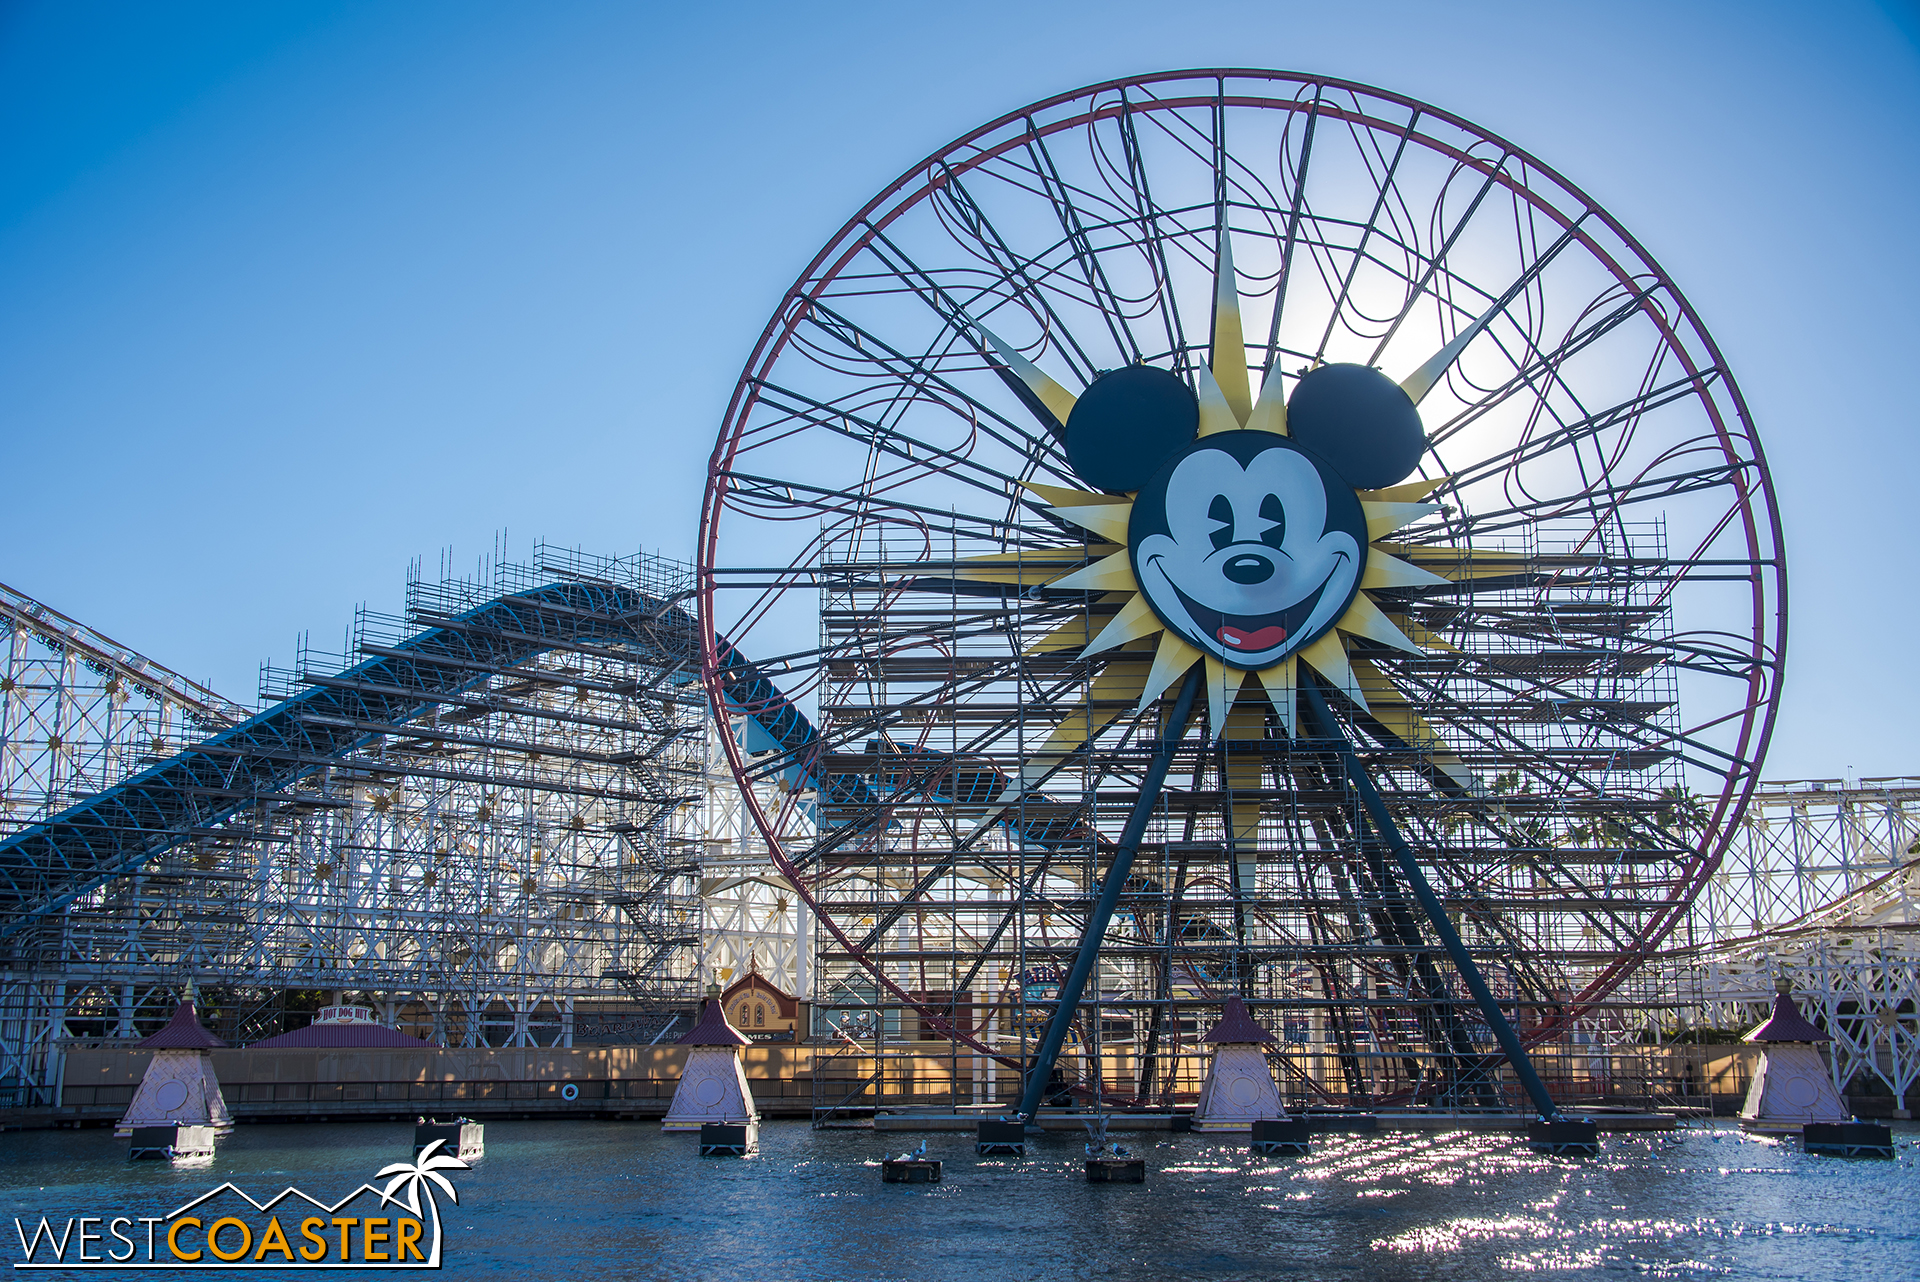 Mickey's Fun Wheel will be remarketed with Pixar characters and imagery. The ferris wheel carriages have already been removed for refurbishment and new graphics. Mickey's face will remain, however.